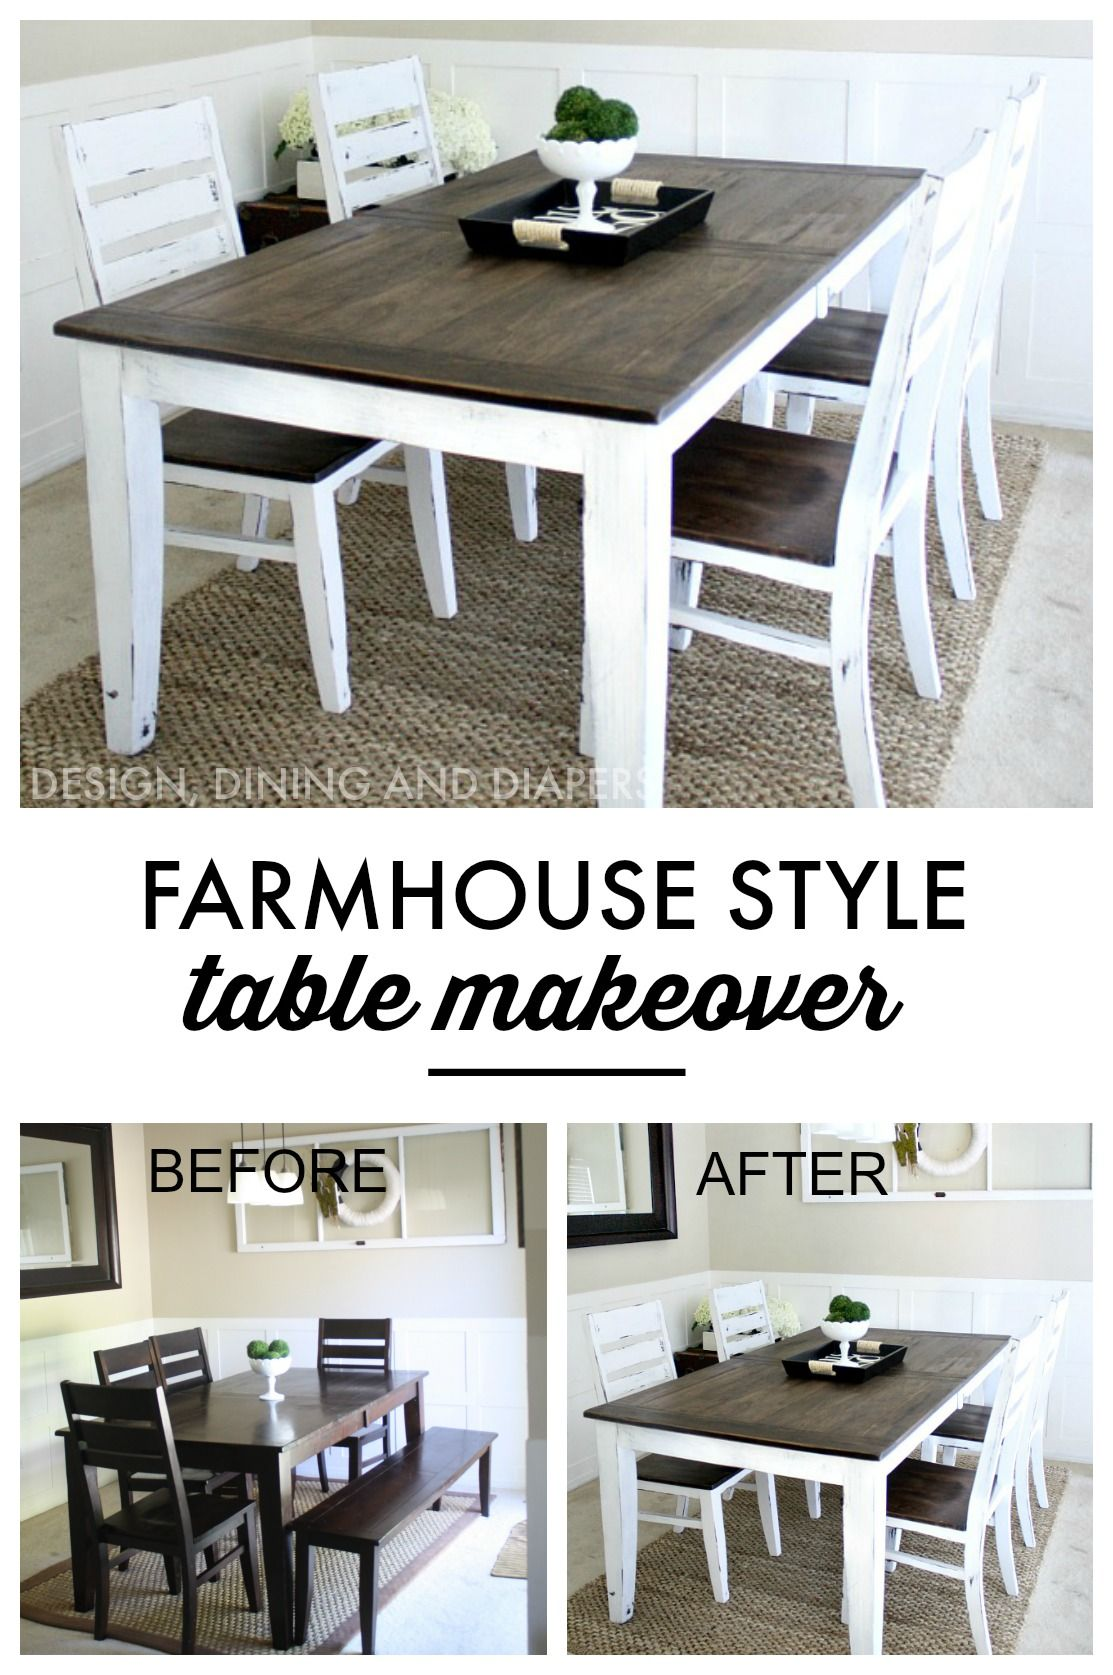 Farmhouse Table Makeover | Pinterest | Characters, Learning and ...